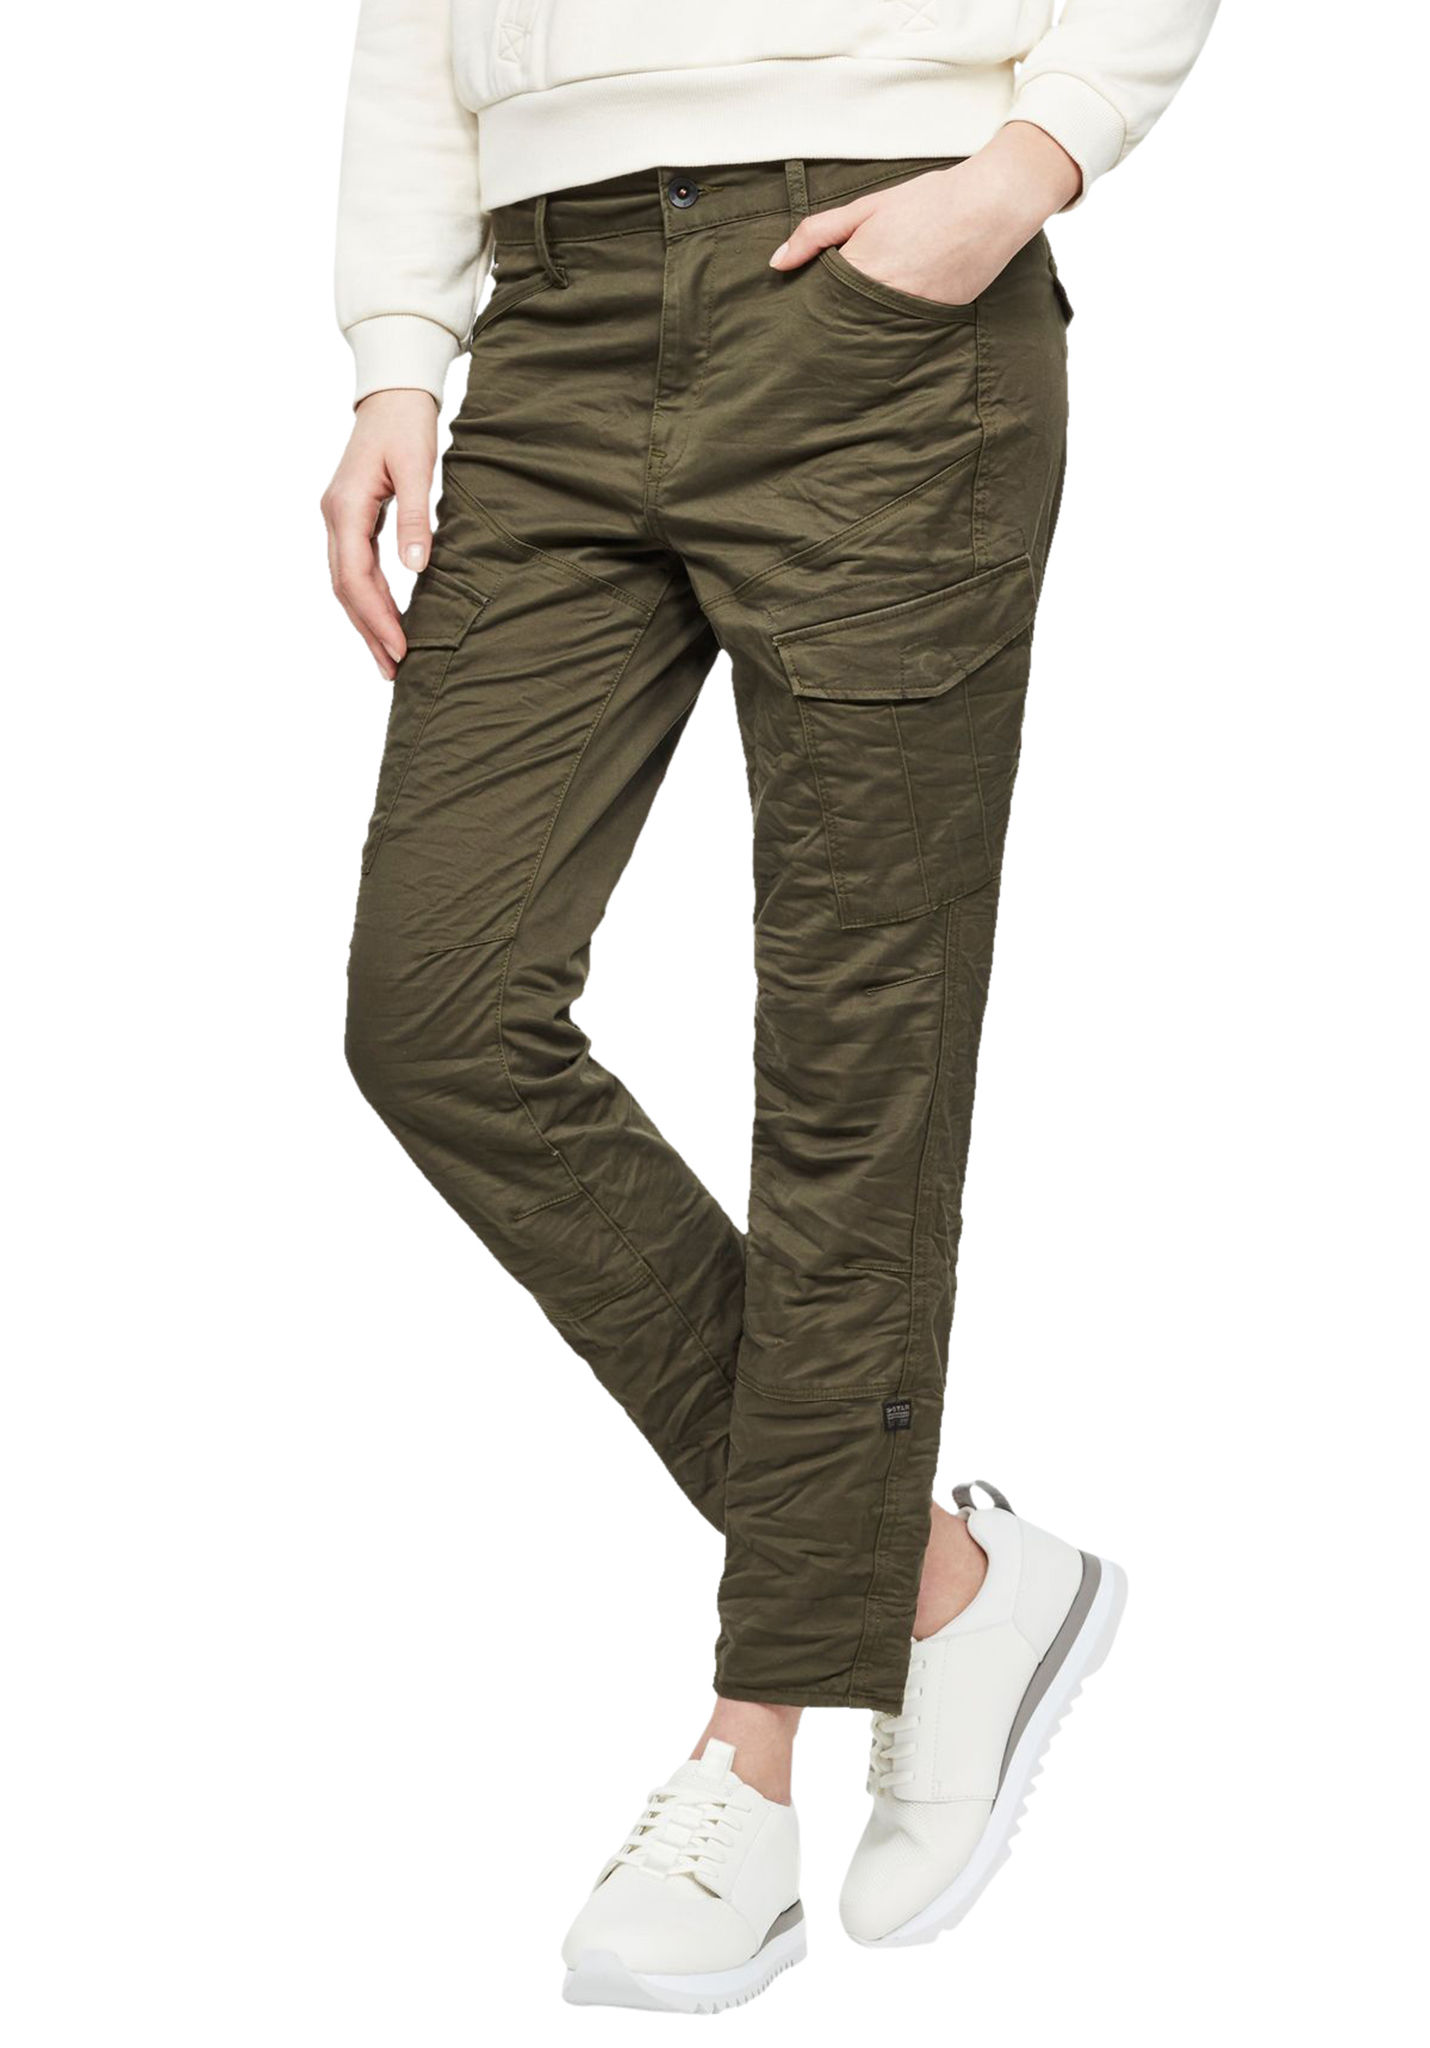 b64ee5b4a9 G-STAR Rovic Mid Skinny - Cargo Pants for Women - Green - Planet Sports